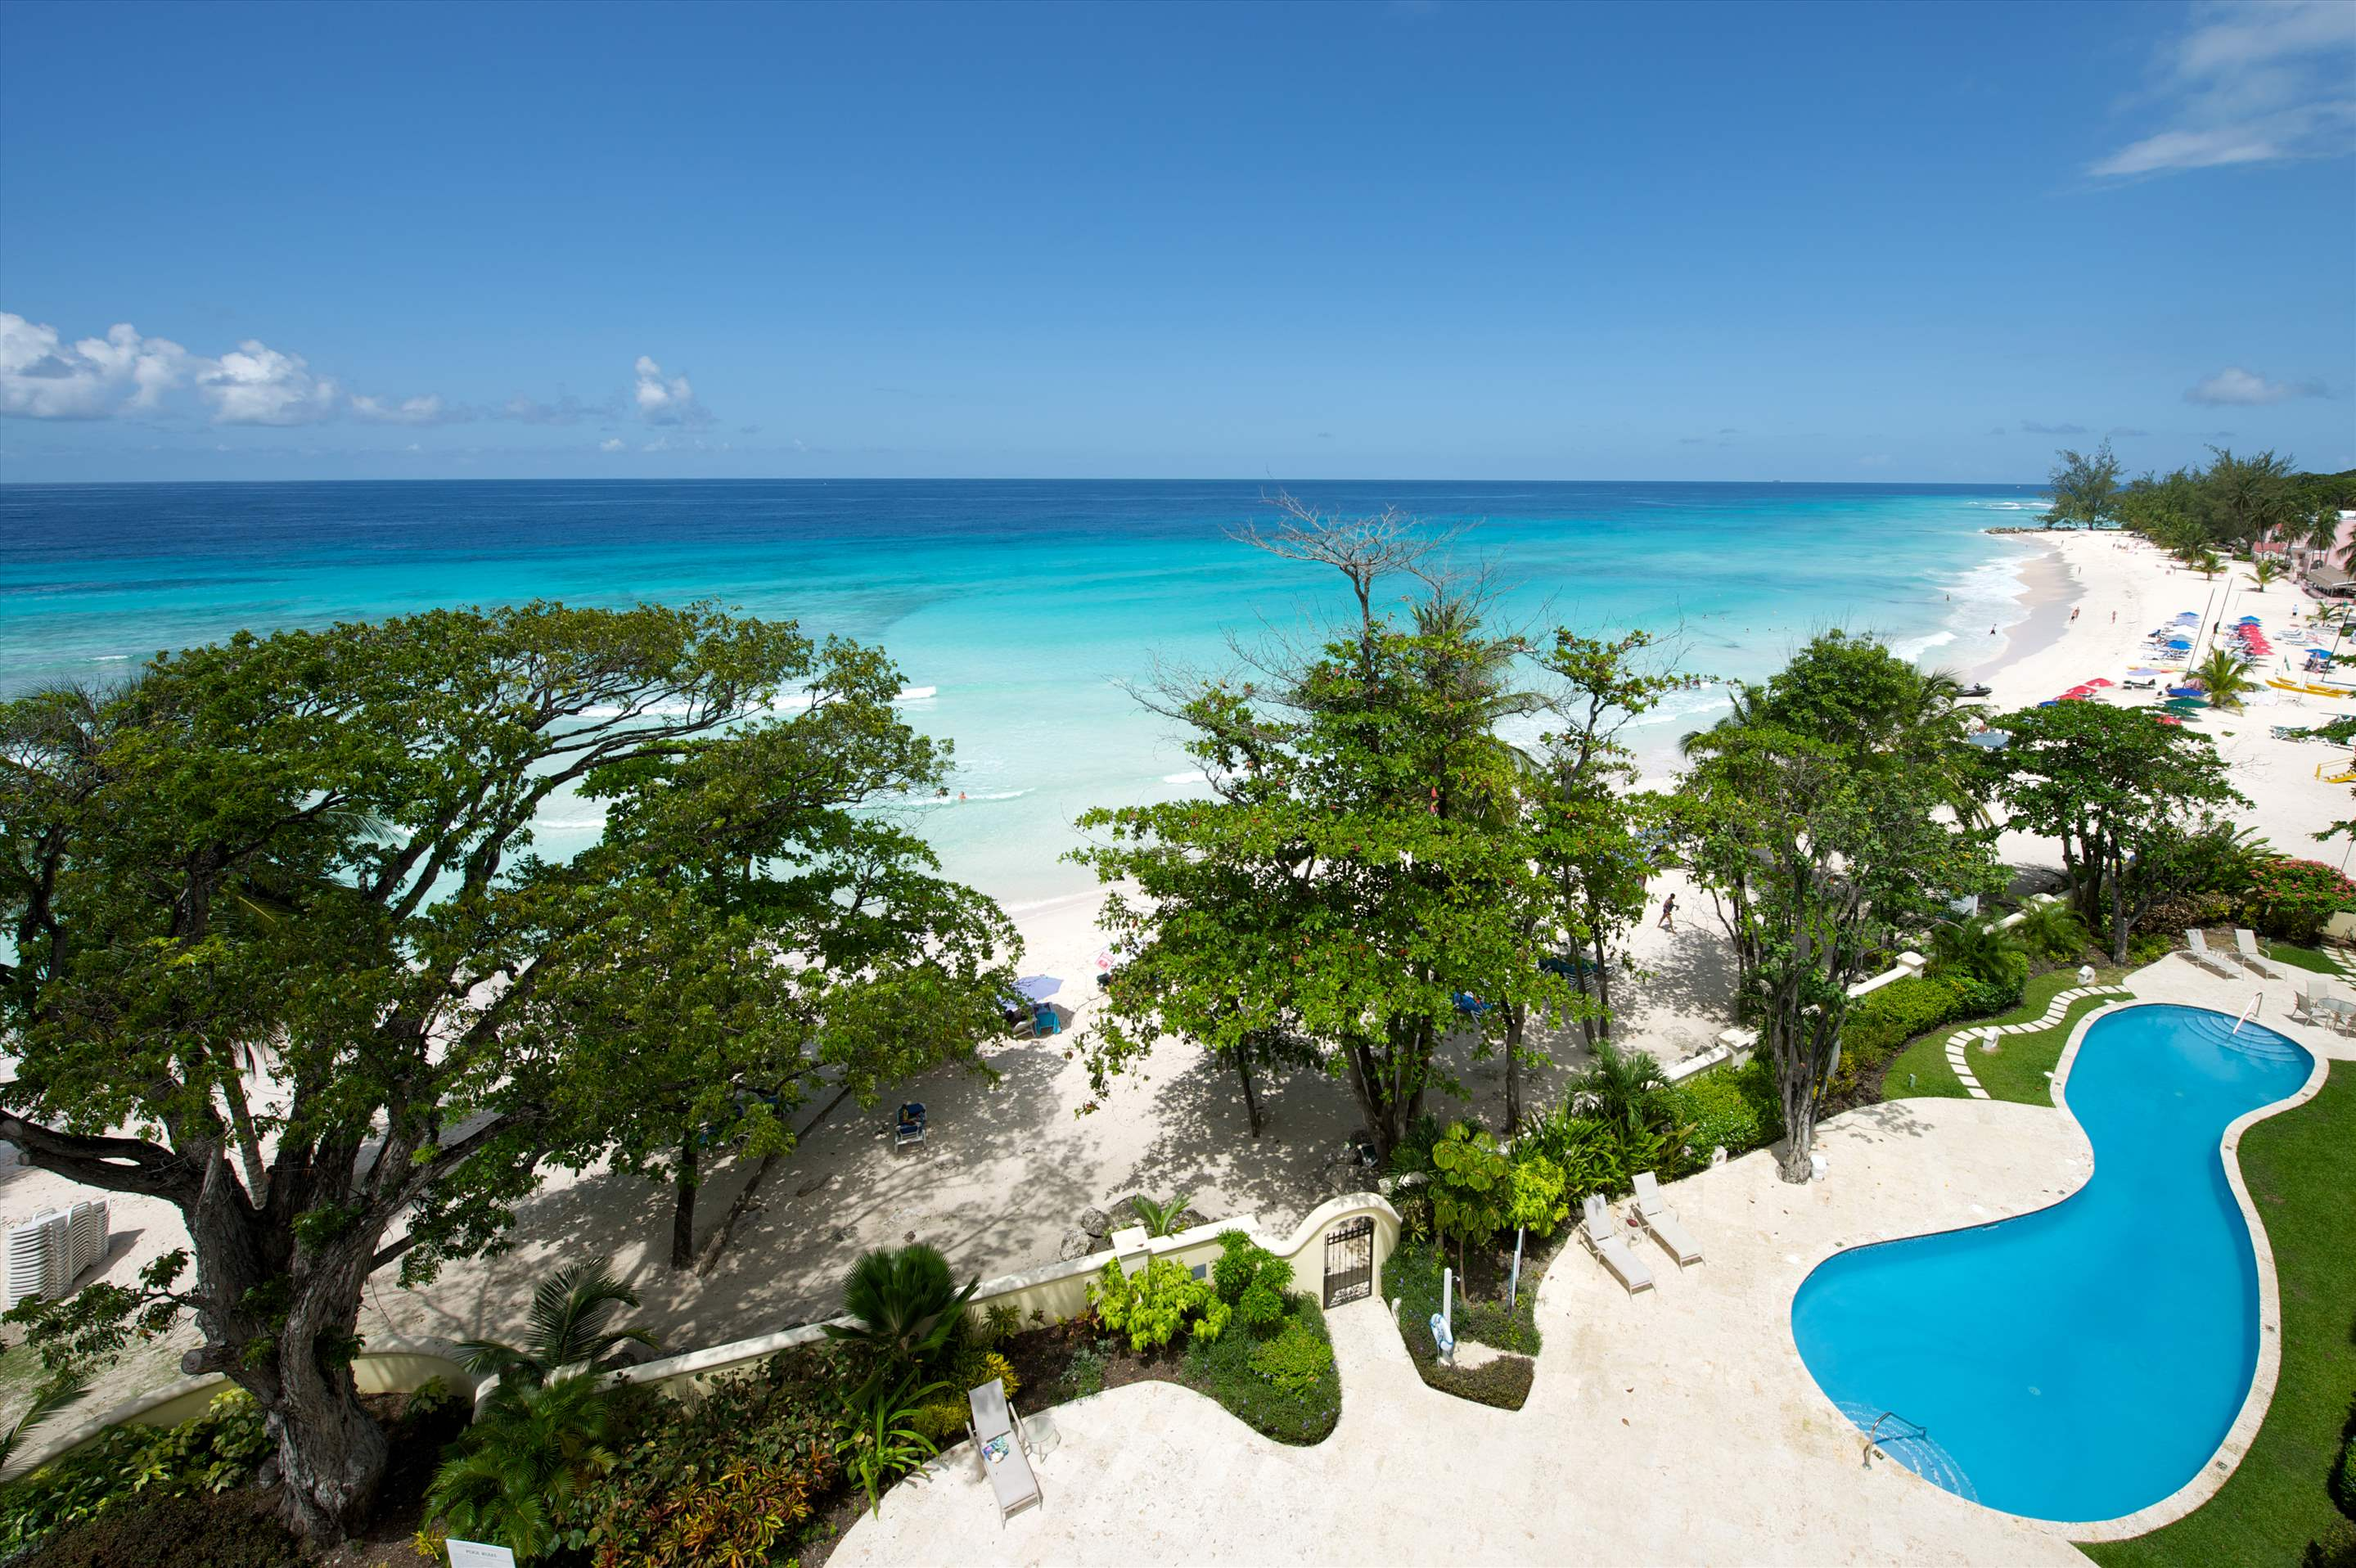 Sapphire Beach 509, 2 bedroom, 3 bedroom apartment in St. Lawrence Gap & South Coast, Barbados